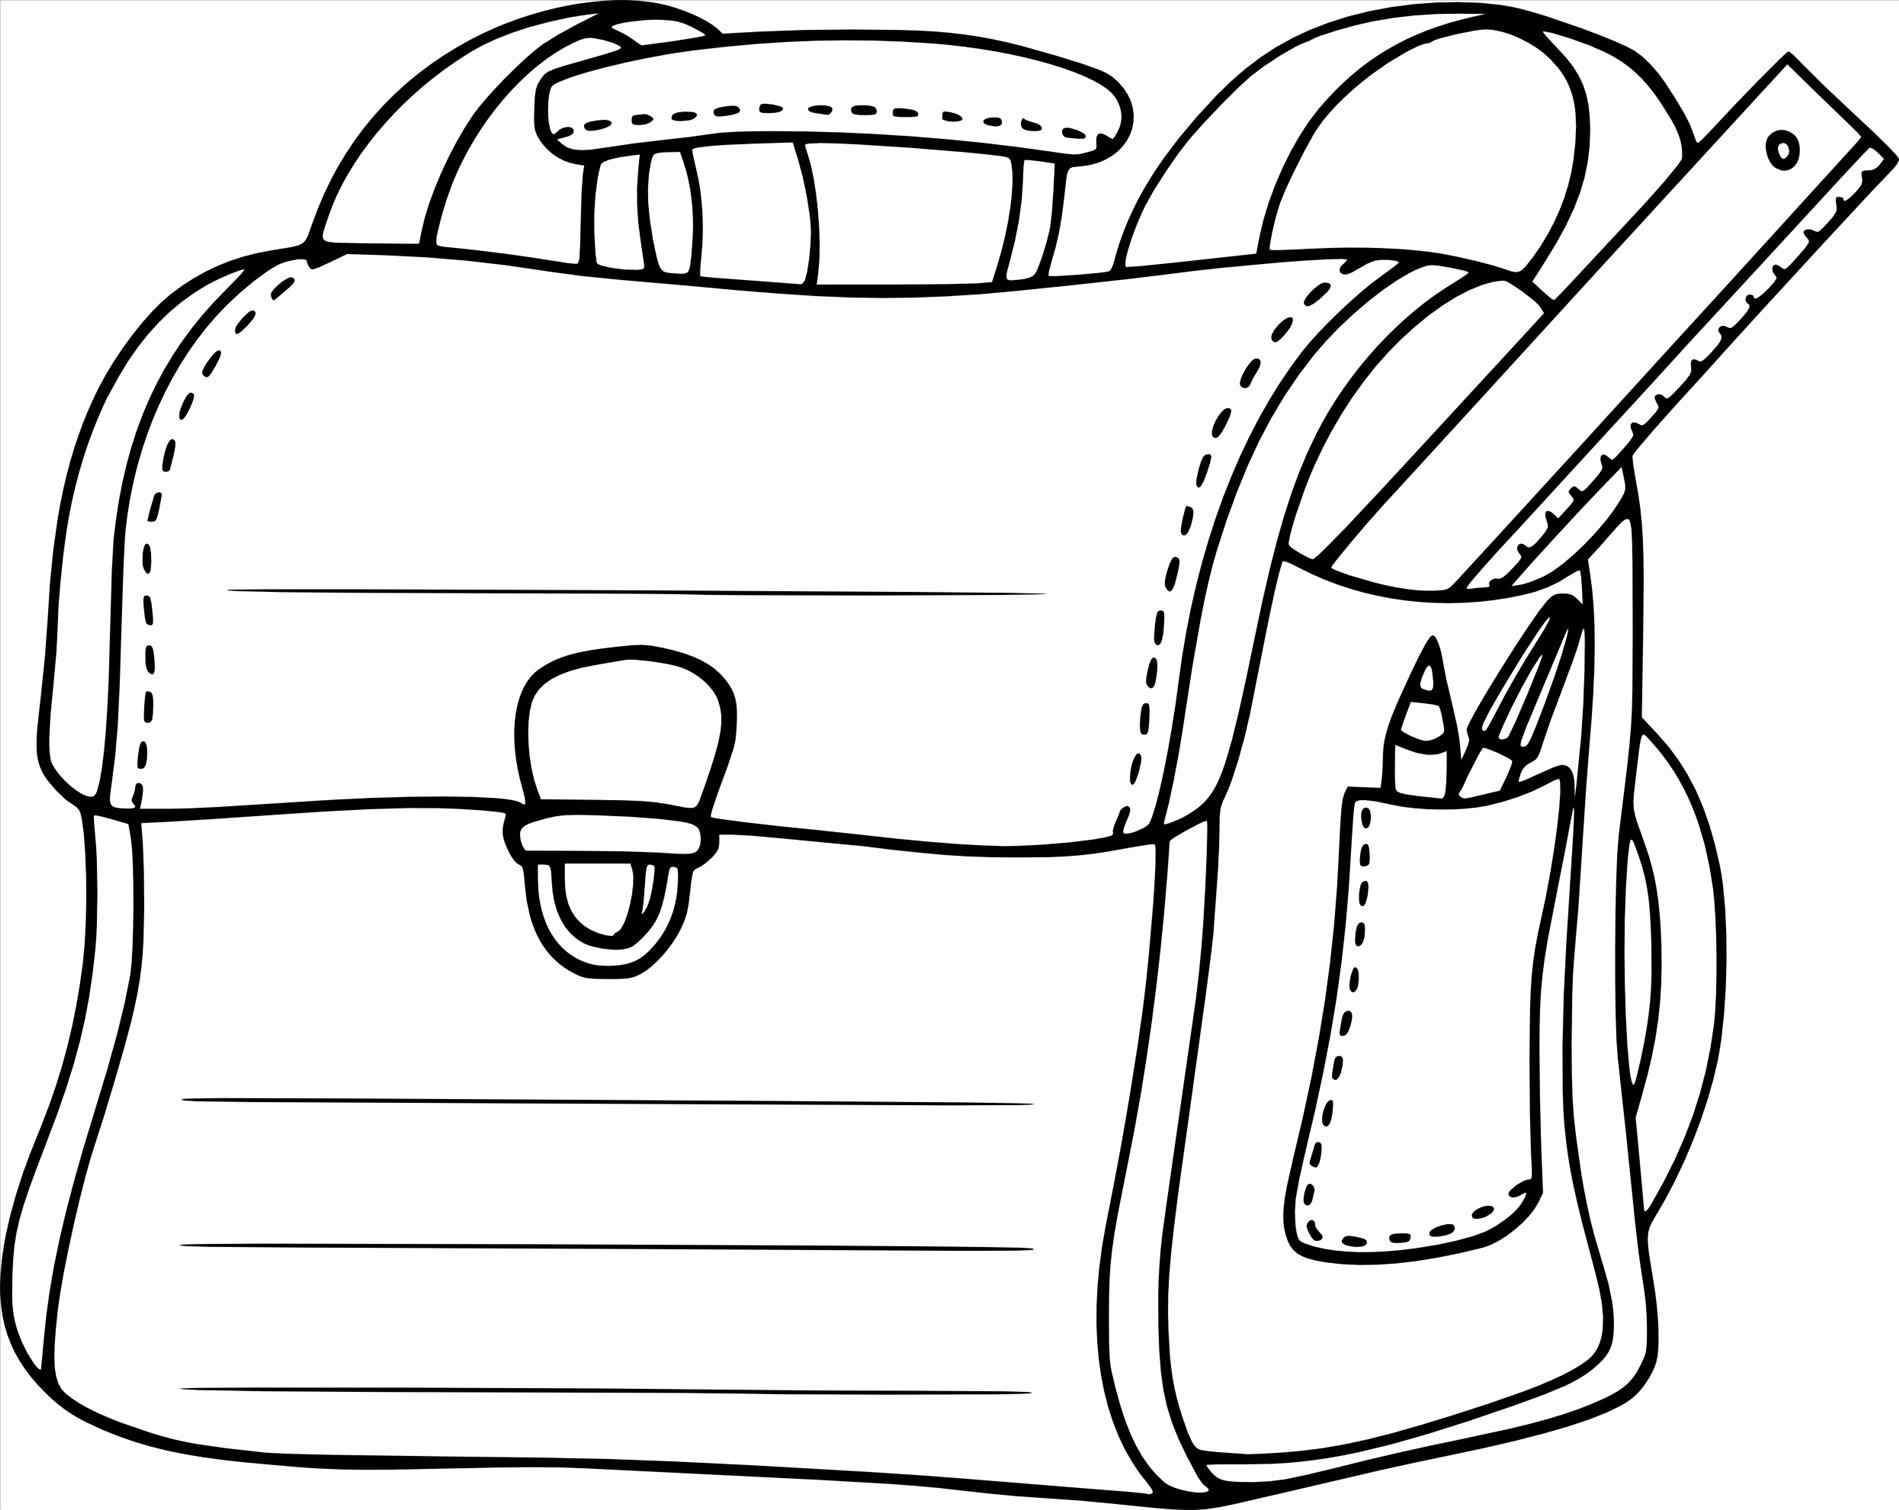 cartable dessin